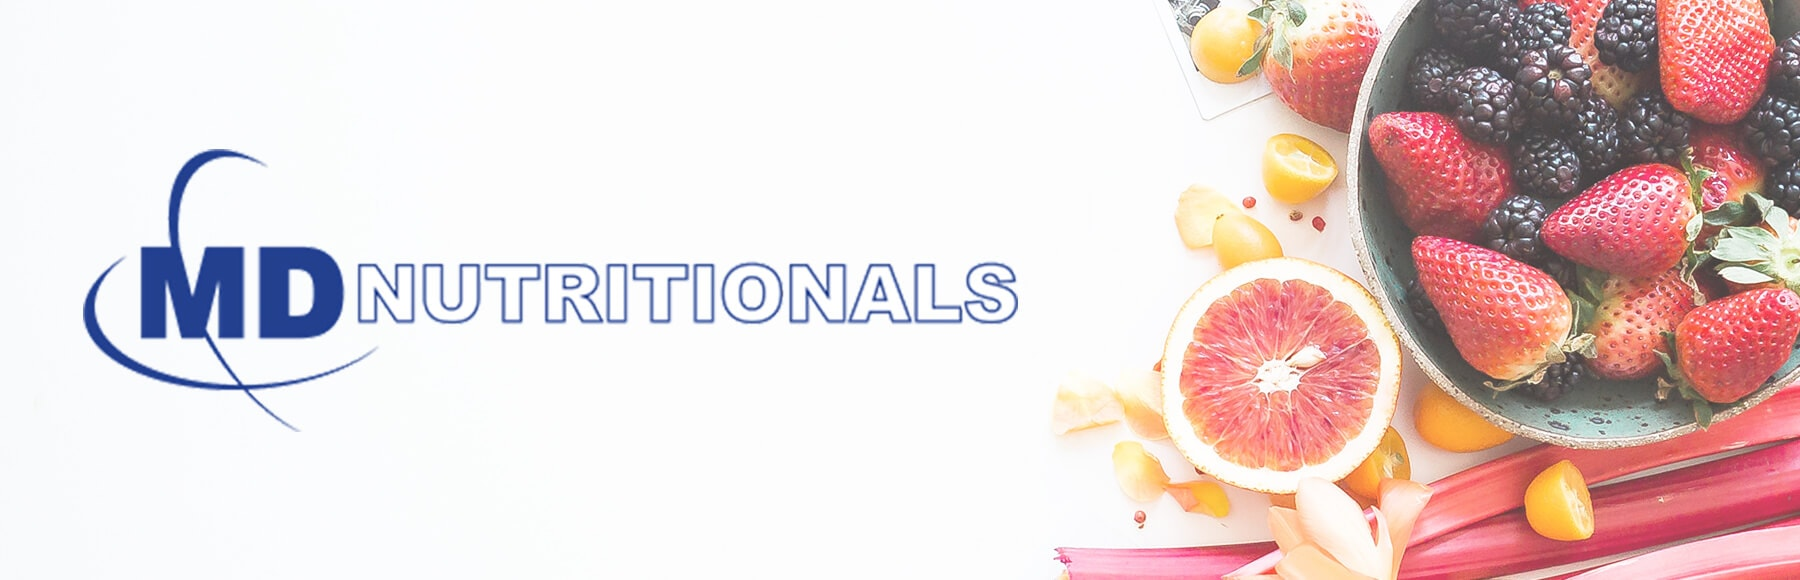 md-nutritionals-banner.jpg